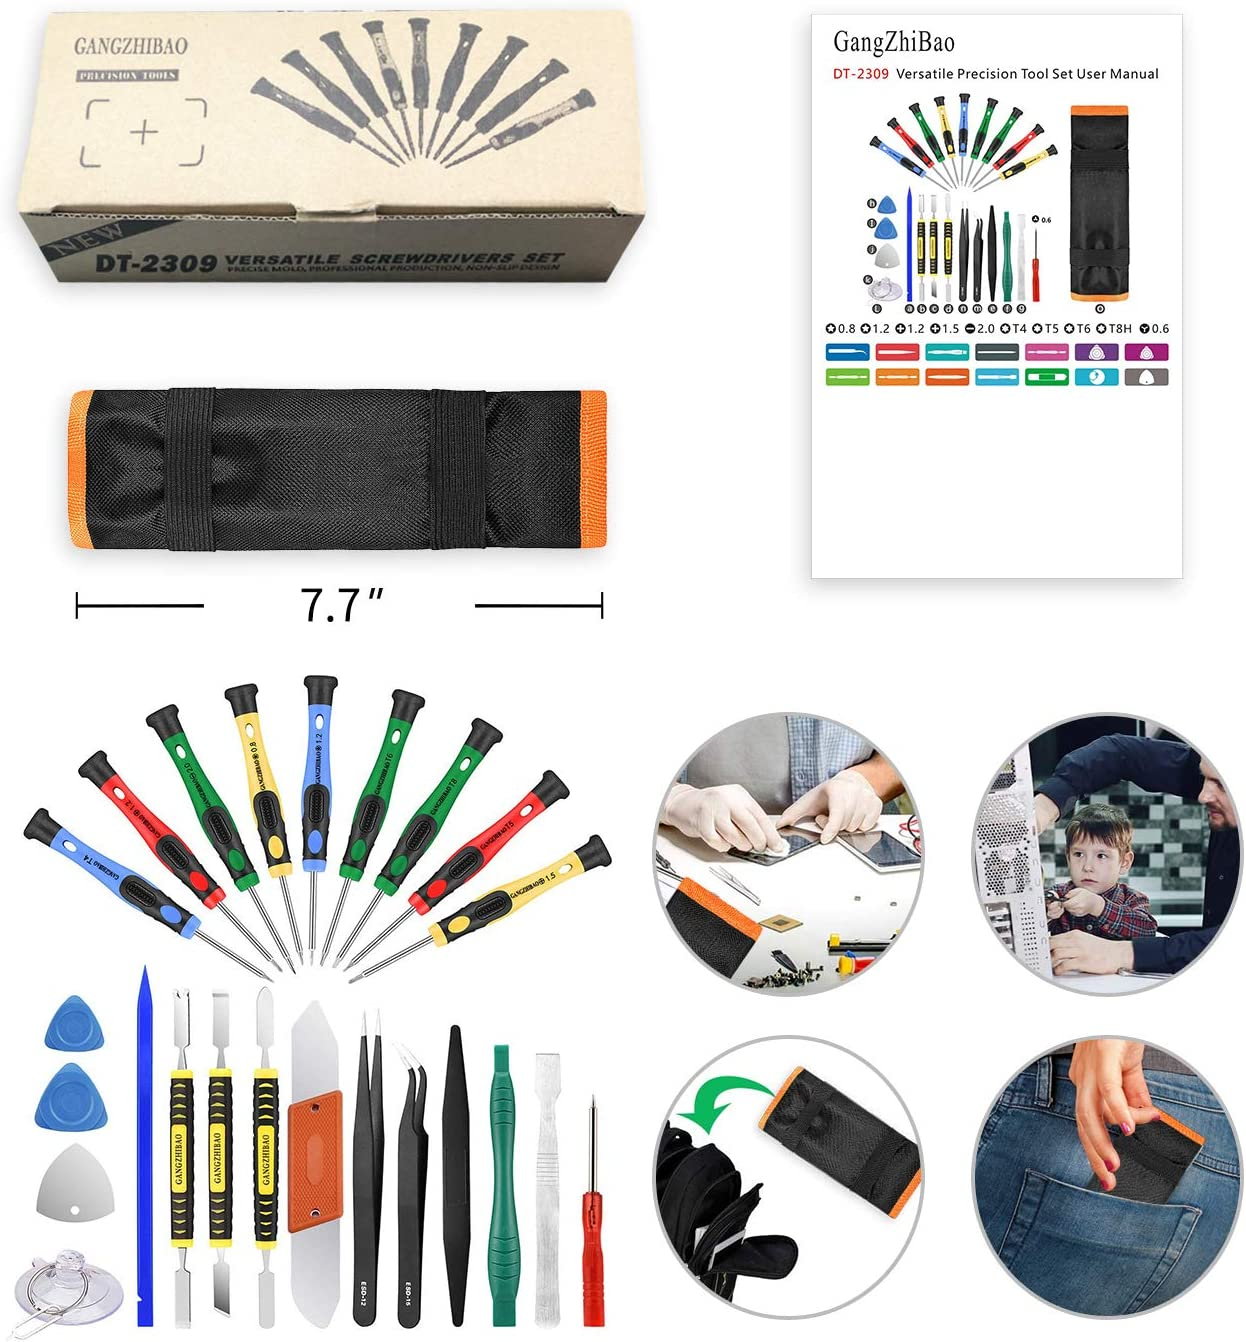 25pcs Electronics Repair Tool Kit, GangZhiBao Precision Screwdriver Set Magnetic for Fix Apple iPhone,Cell Phone,Smart Watch,Computer,PC,Tablet,iPad,Camera,Xbox,PS4 Pry Open Replace  Screen Battery: Home Improvement